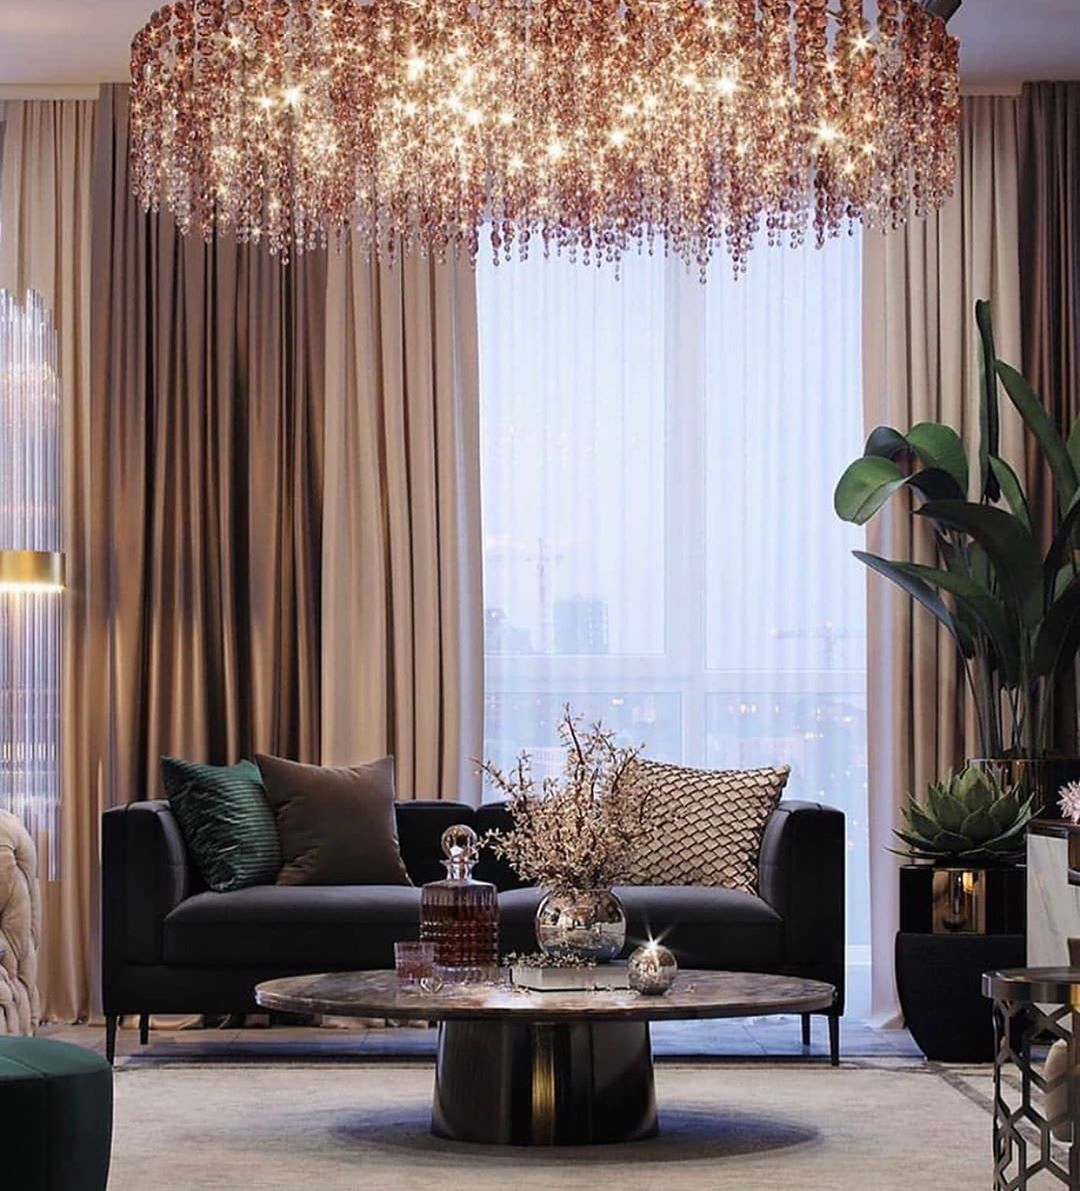 Incredible 22 Beegcom Home Design And Decor App Review Home Decor Home Decor Online Decor